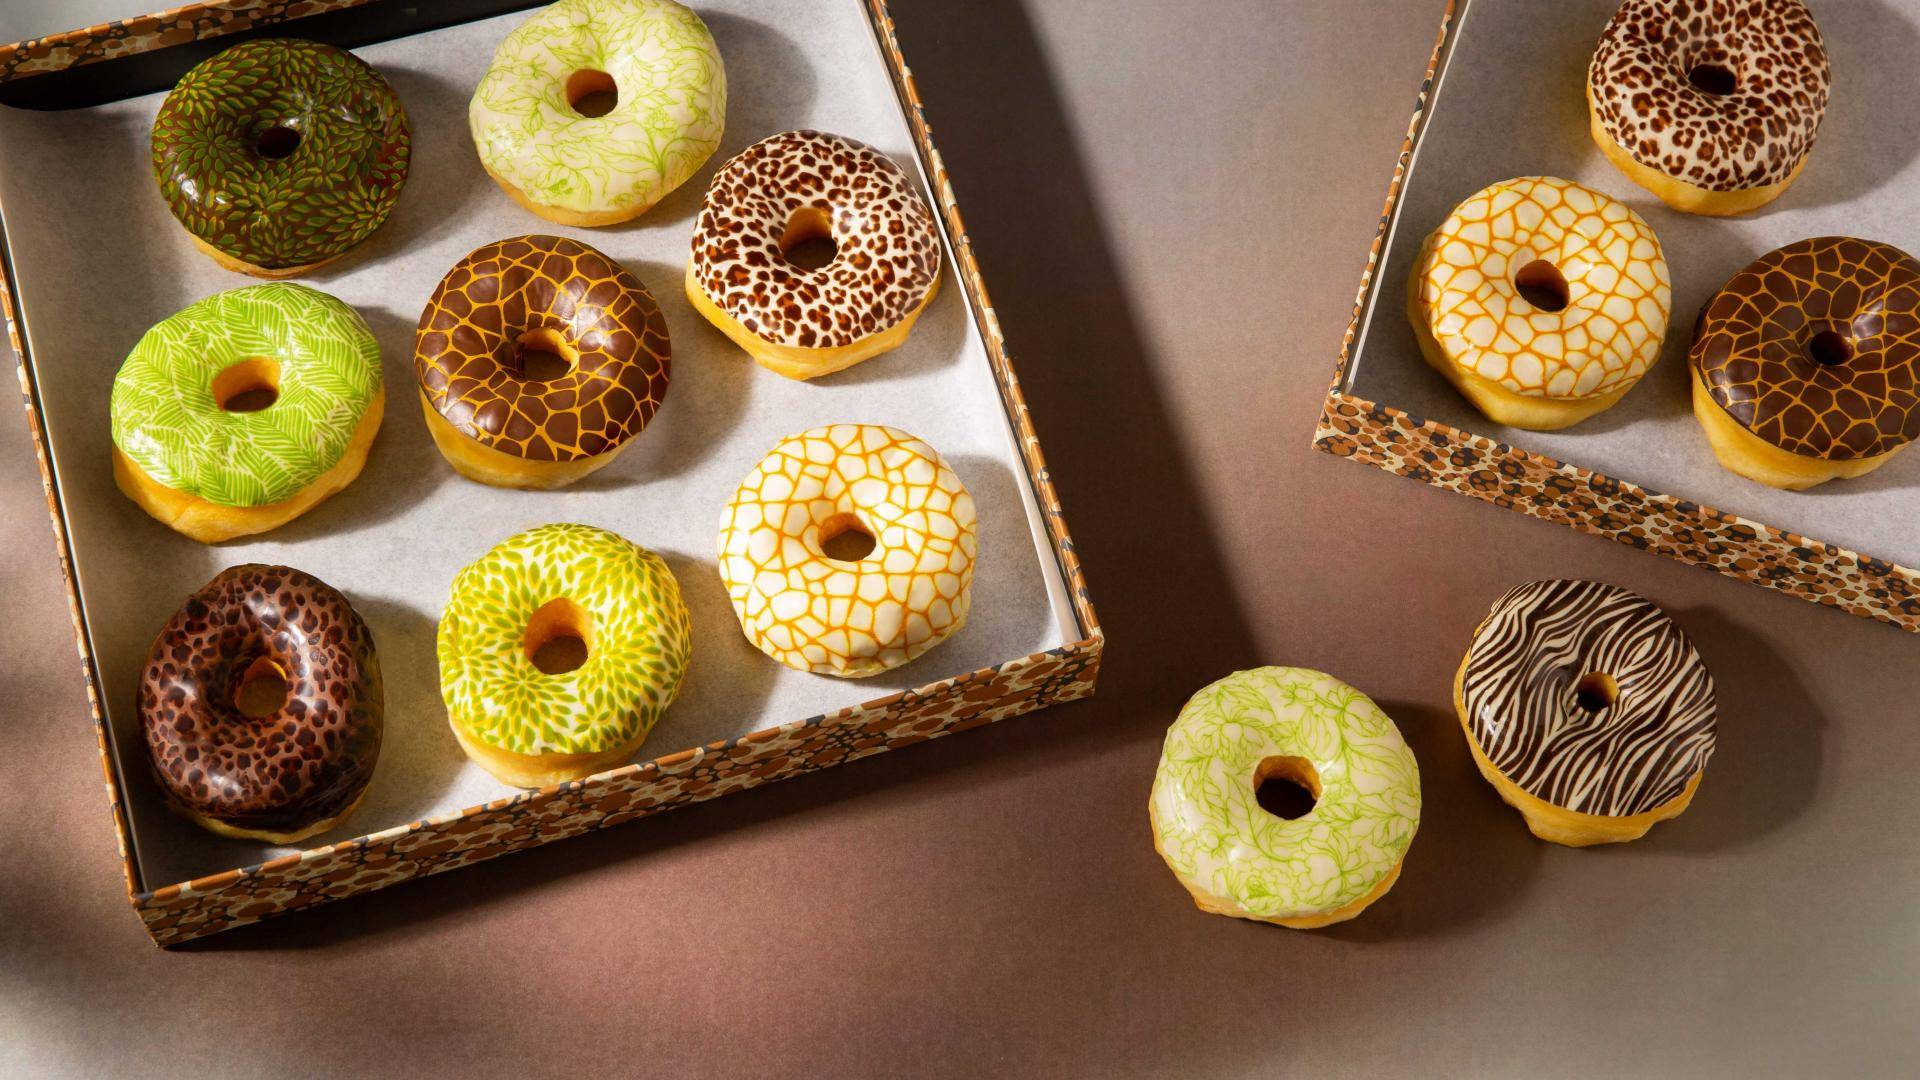 Donuts with printed glazings